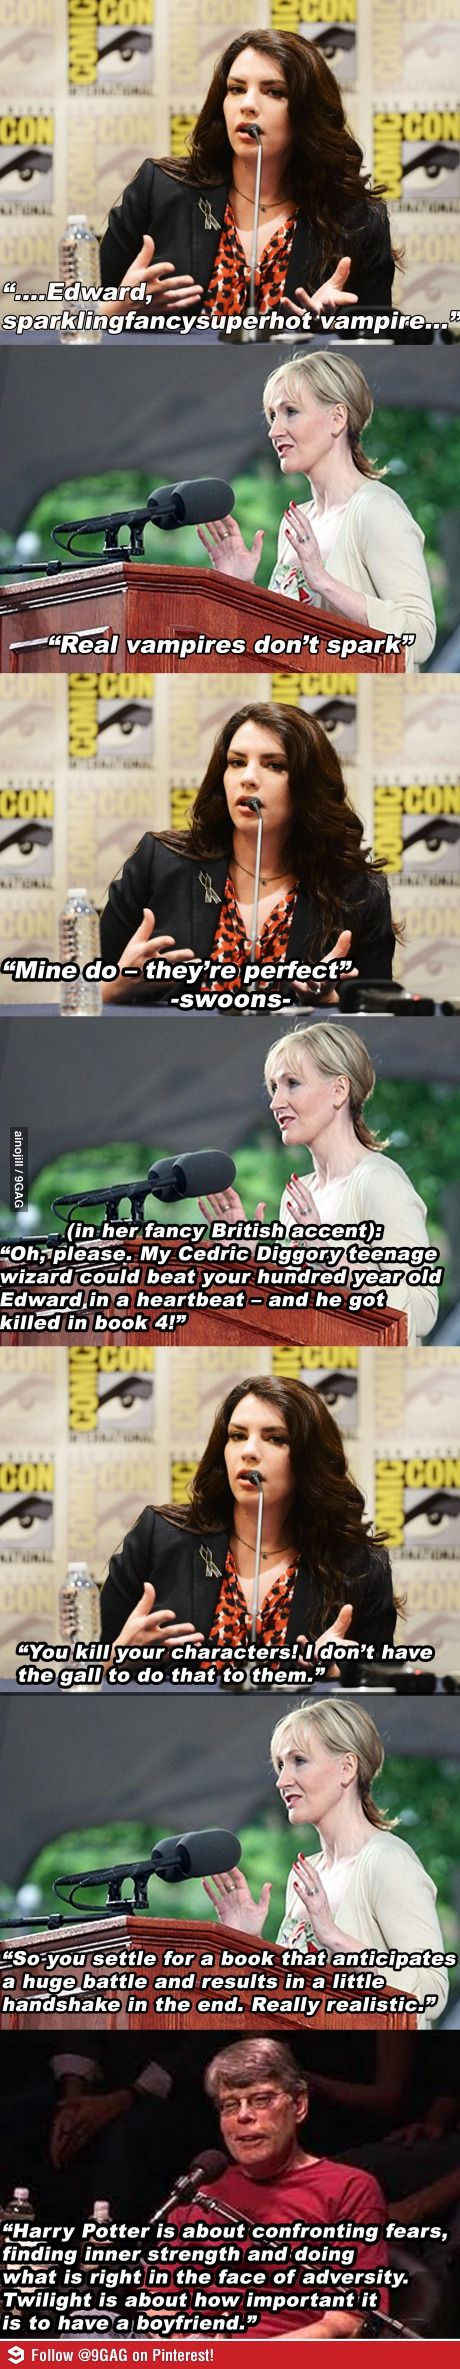 Go J.K. Rowling!! AND Stephen King!!